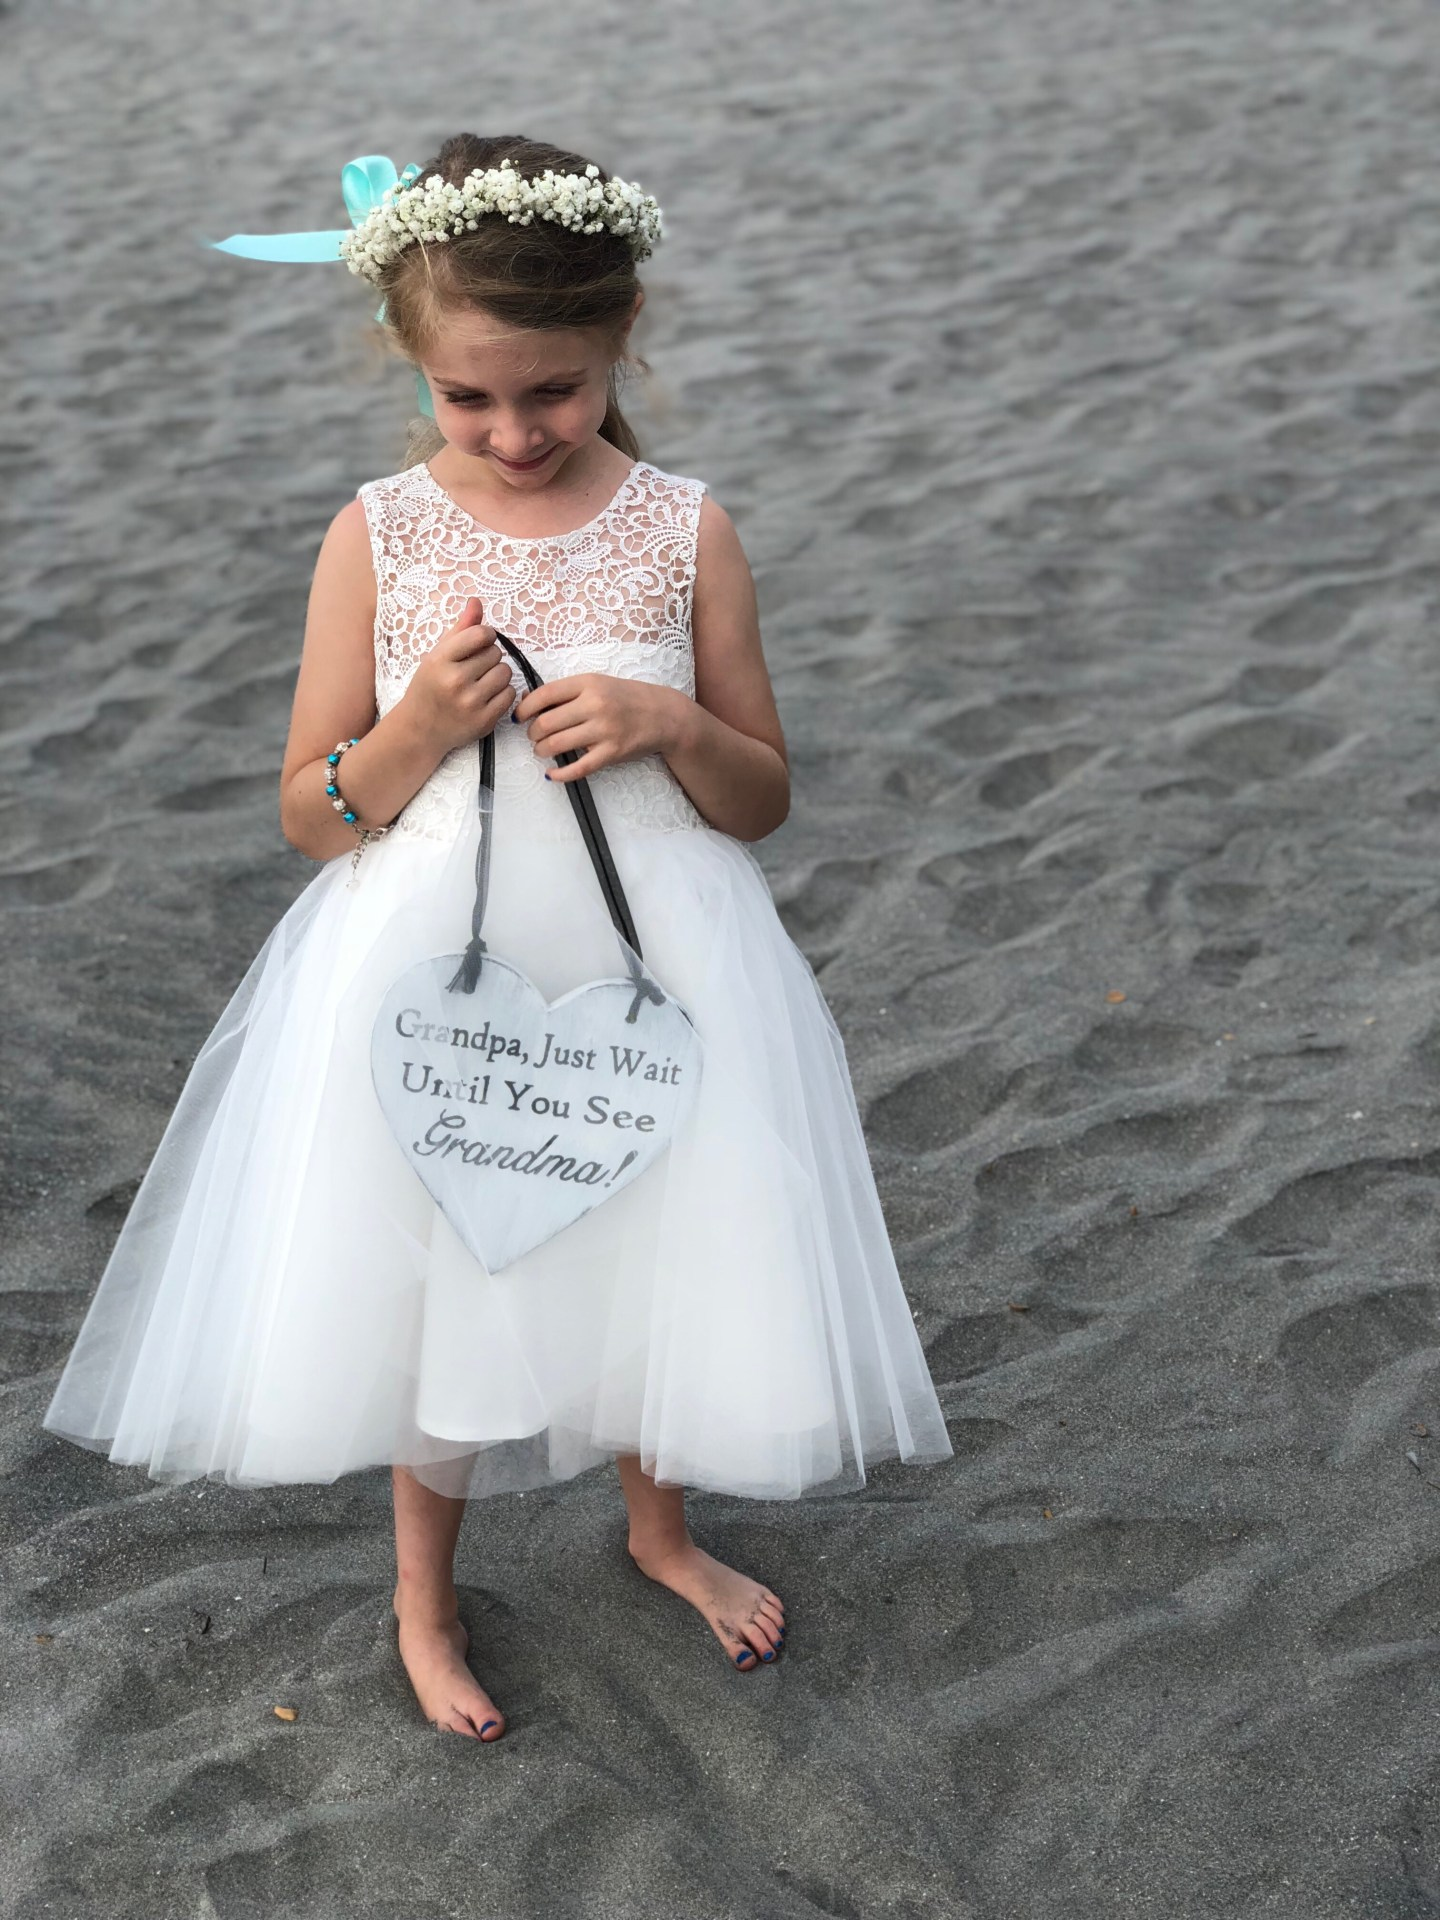 1c4d2eade Brooke was the flower girl. We got her dress on Amazon. Miama Ivory Lace  Tulle Wedding Flower Girl Dress Junior Bridesmaid Dress,Ivory,2T